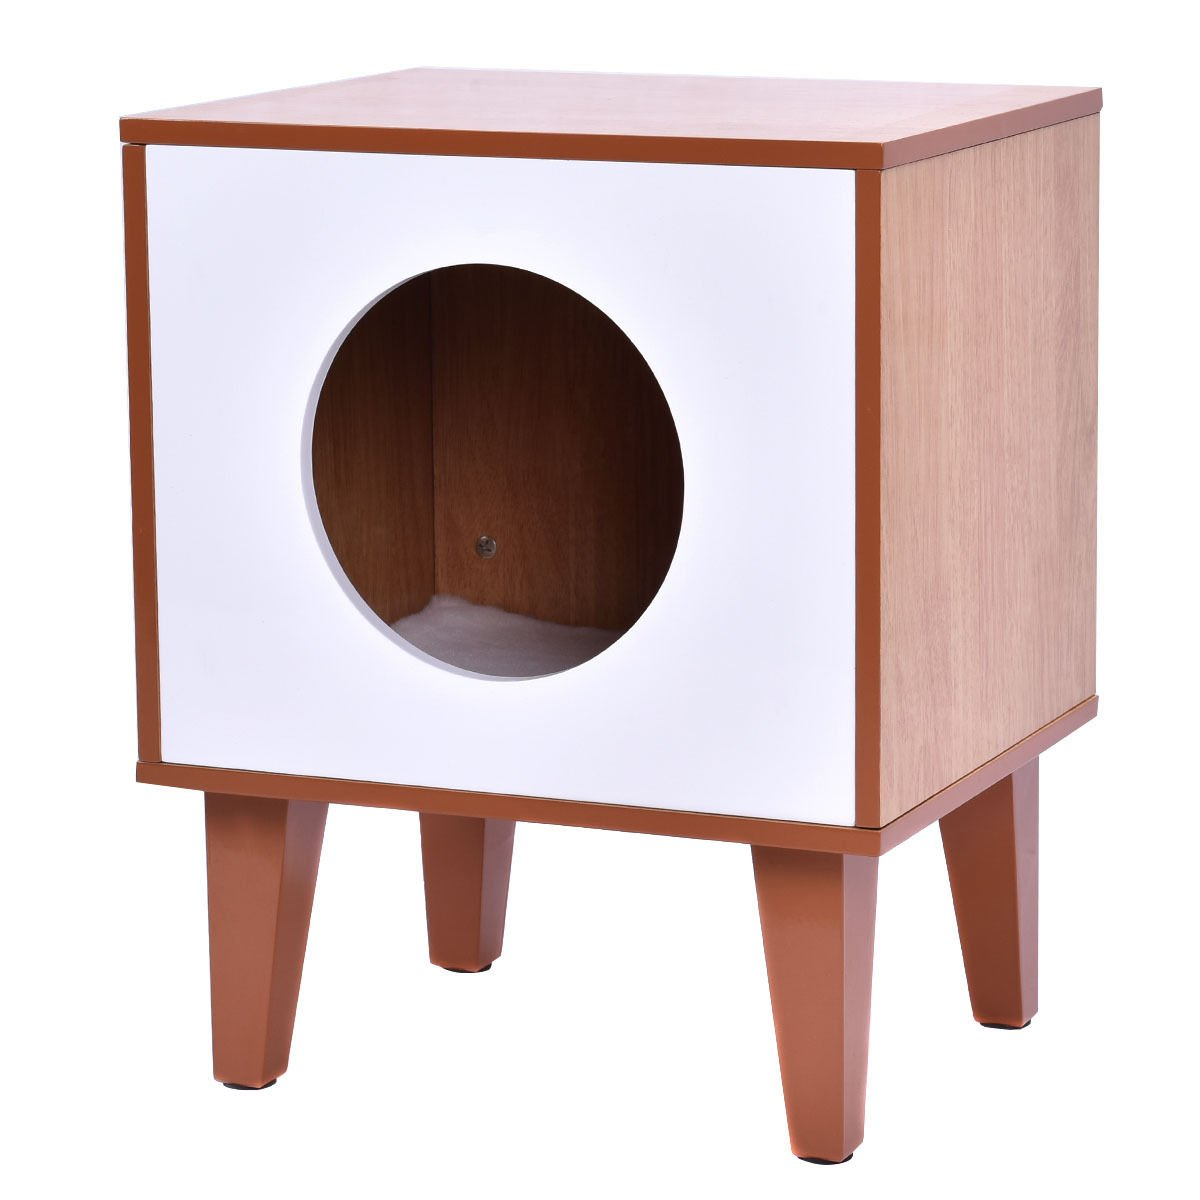 New Cat Box Cushion Bed Cleaning Enclosure Hidden Pet Cabinet Furniture Wood by totoshoppet (Image #1)